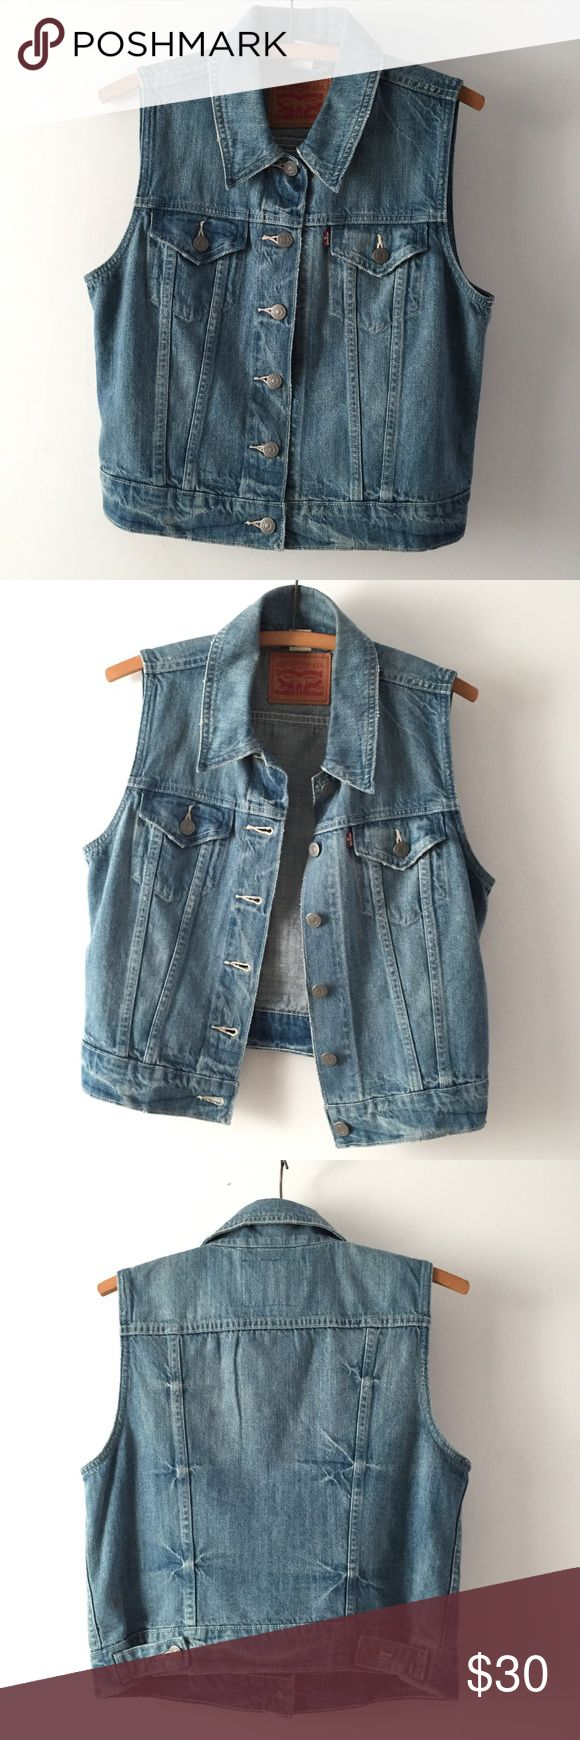 Levi's classic sleeveless blue denim jean jacket Levi's classic blue denim sleeveless jean jacket. Excellent condition, size M Levi's Jackets & Coats Jean Jackets